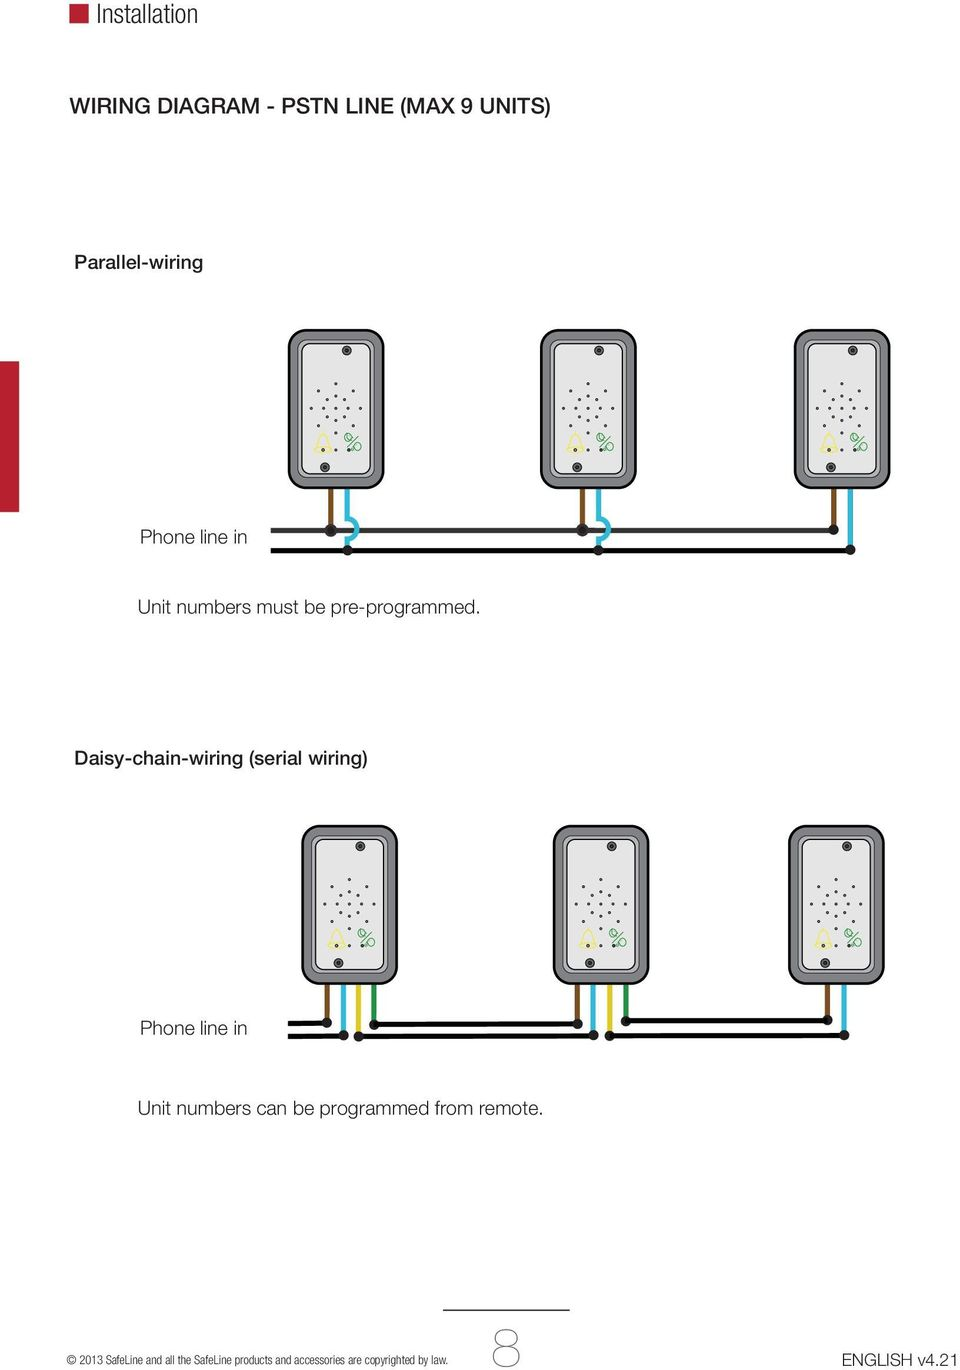 Safeline Mx2 Installation Manual Small Inexpensive And Phone Line Wiring Diagram Pictures Daisy Chain Serial In Unit Numbers Can Be